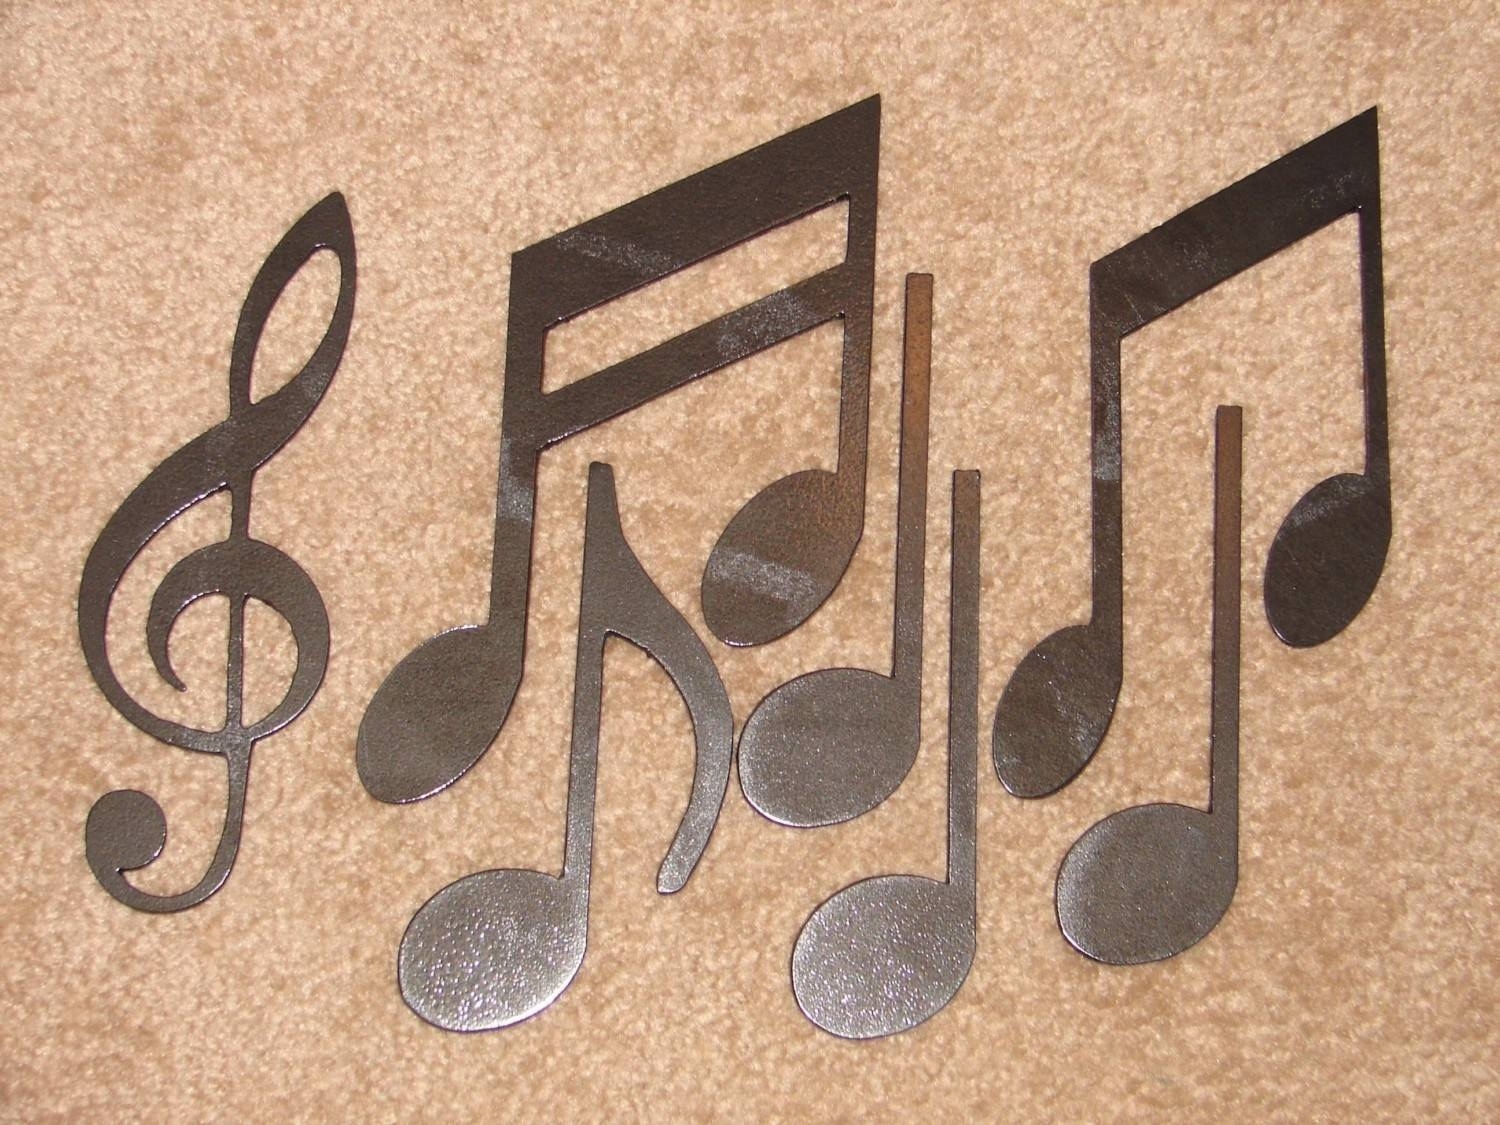 Metal Wall Art Decor Music Notes Musical Note Patio Intended For Newest Musical Metal Wall Art (View 10 of 20)